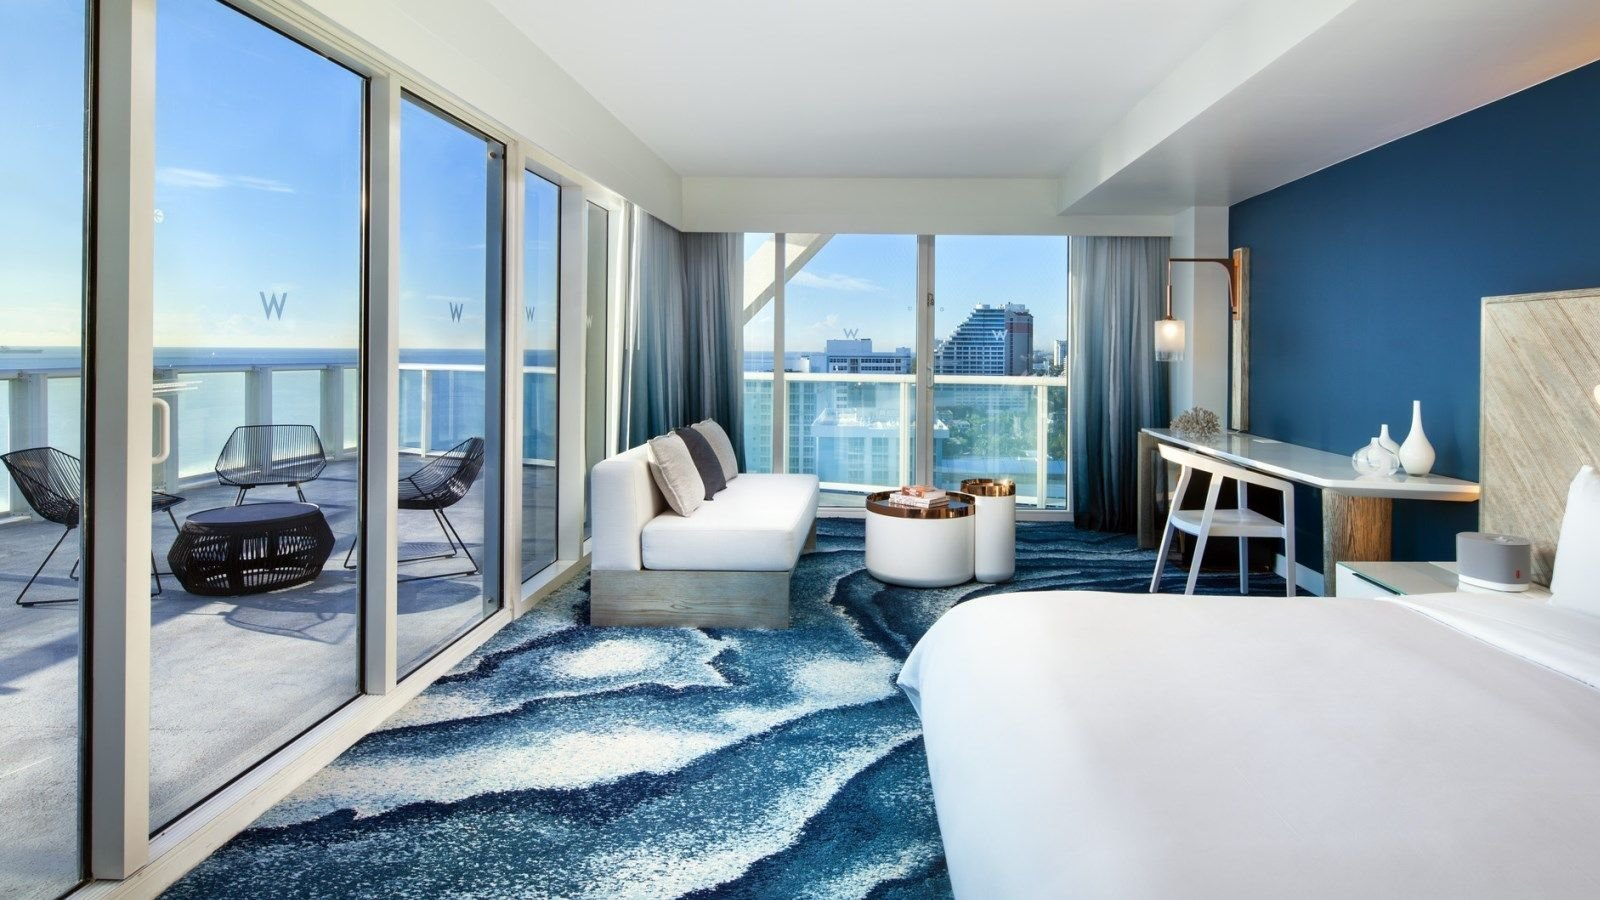 Best 2 Bedroom Hotels Fort Lauderdale Fl Home Plan With Pictures